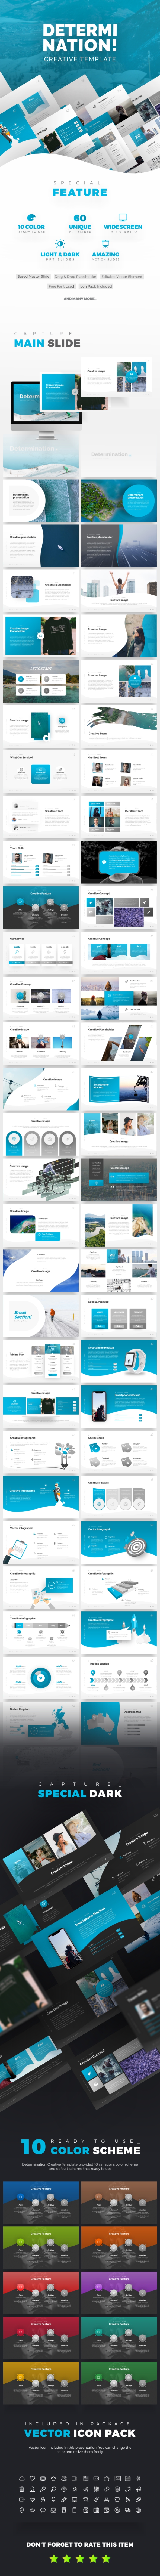 Determination PowerPoint Presentation Template - PowerPoint Templates Presentation Templates